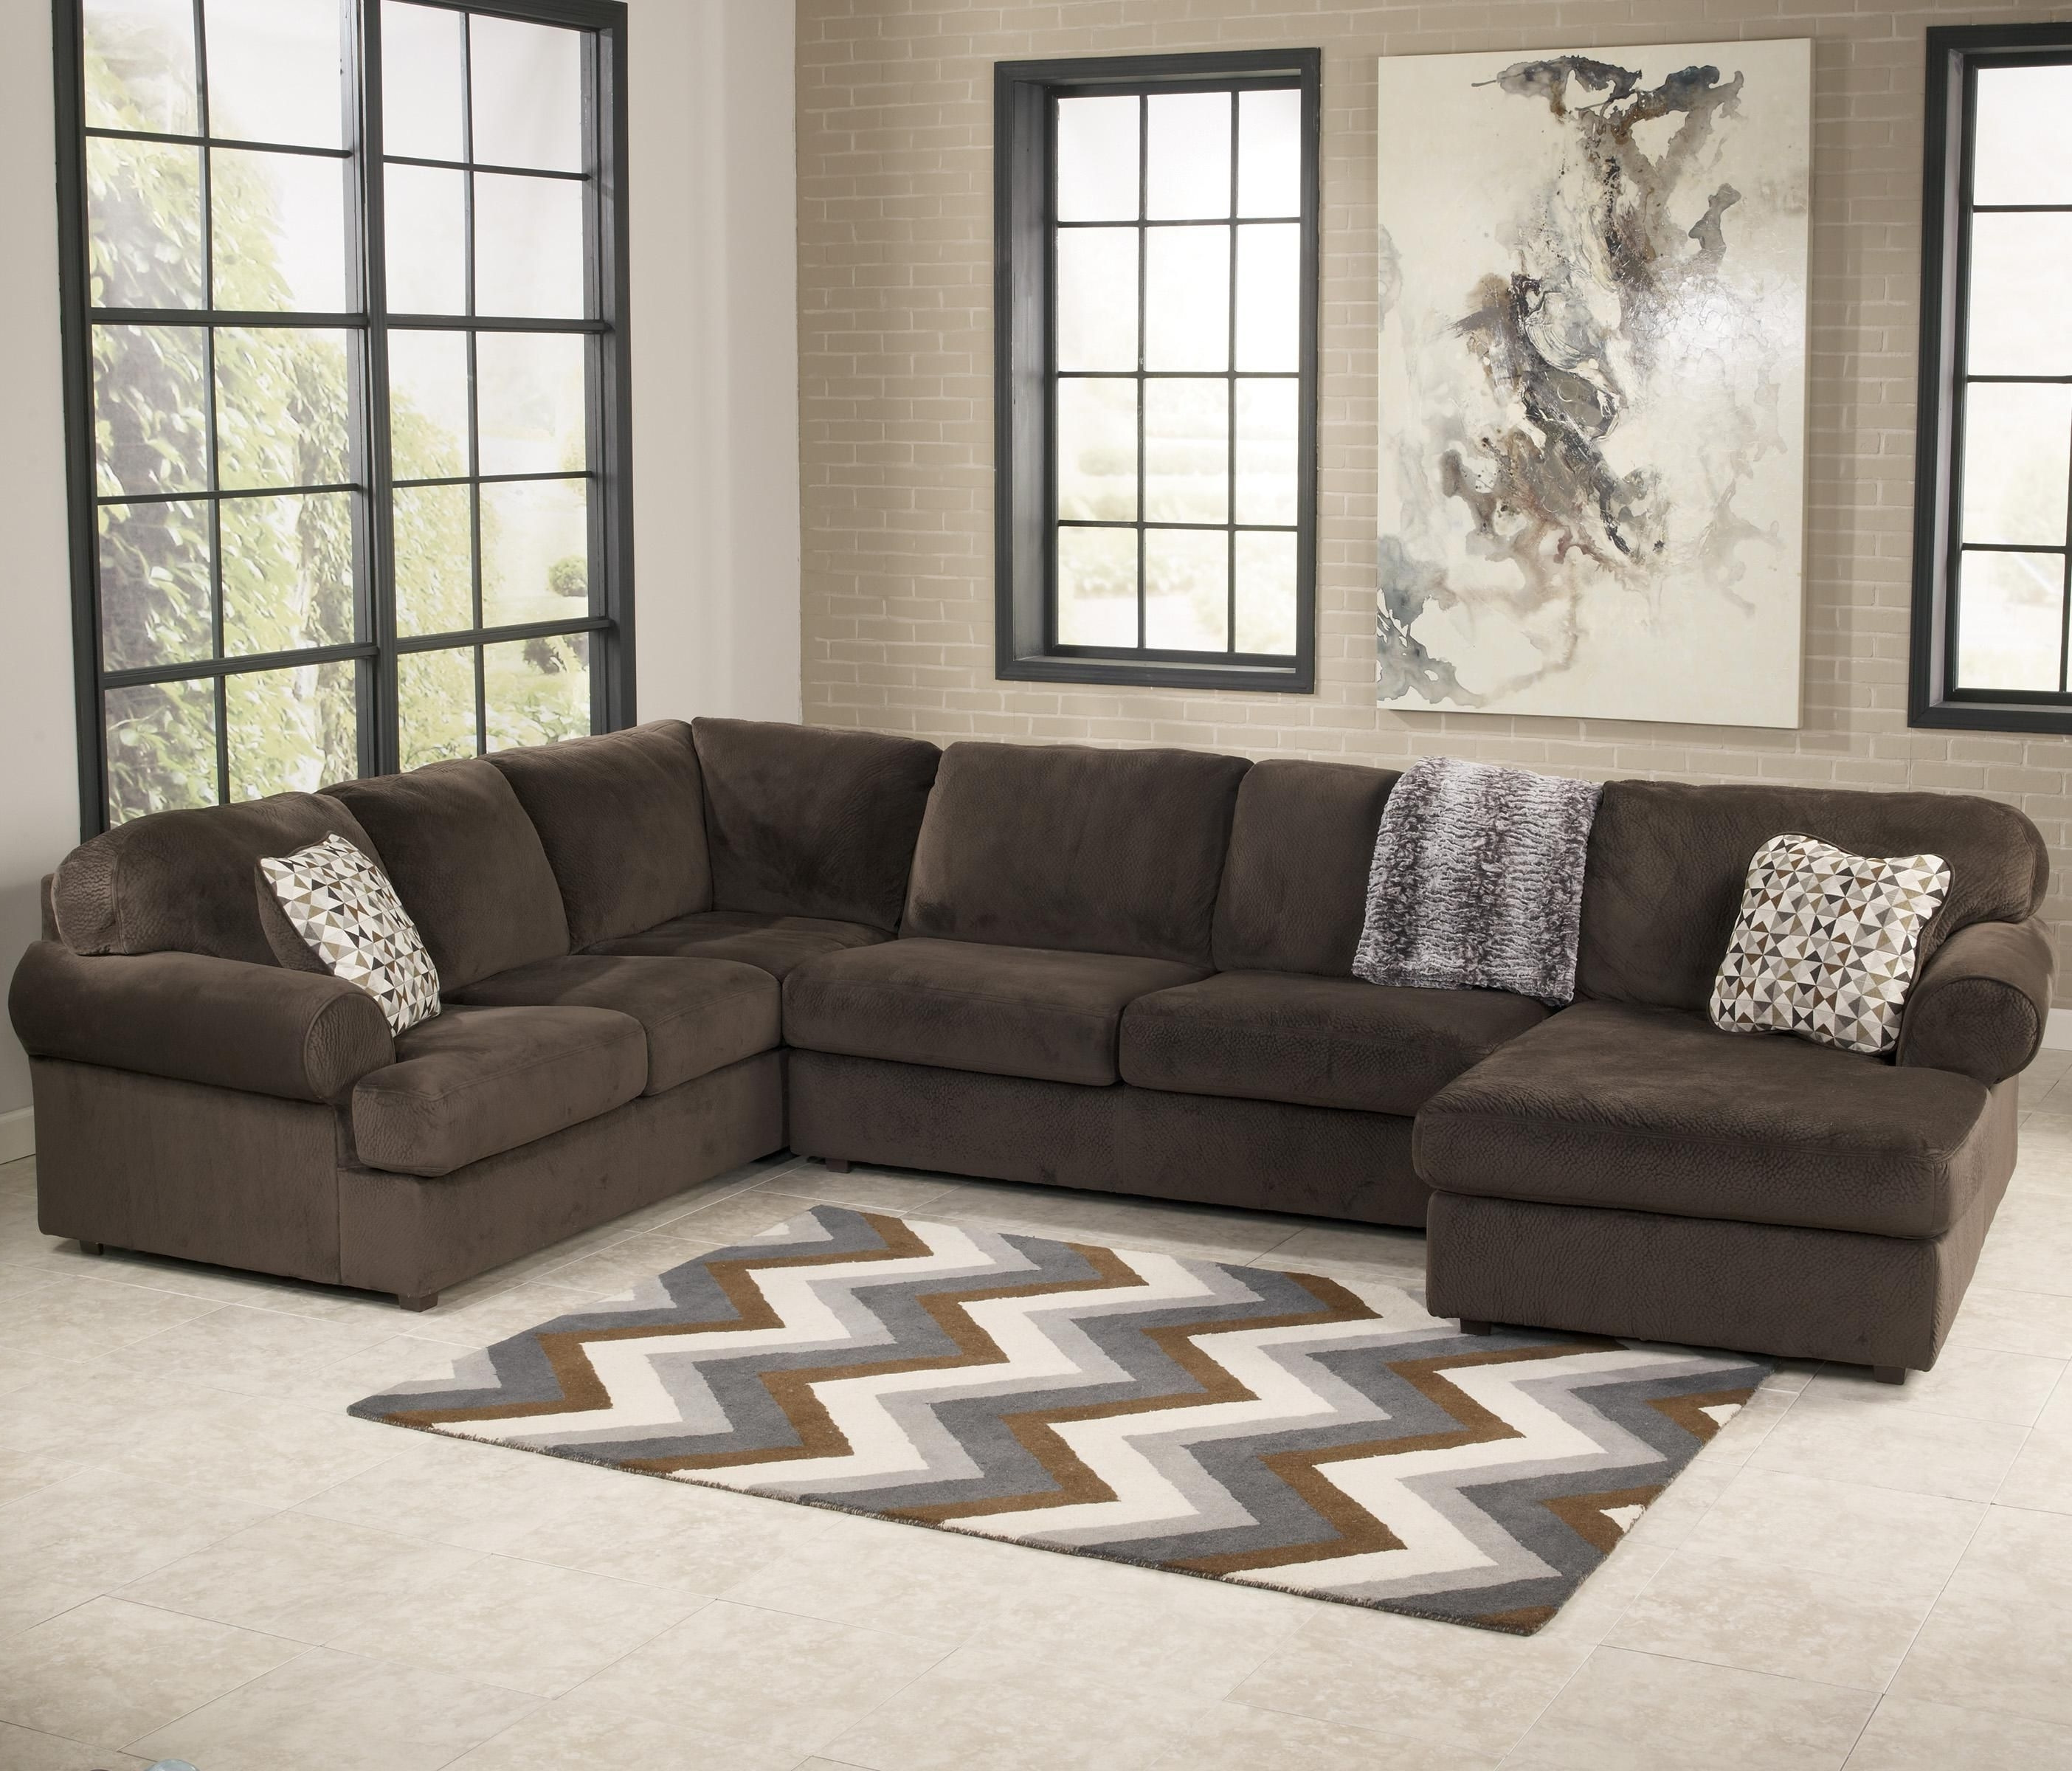 Jessa Place – Chocolate Casual Sectional Sofa With Left Chaise Throughout Recent Queens Ny Sectional Sofas (View 18 of 20)